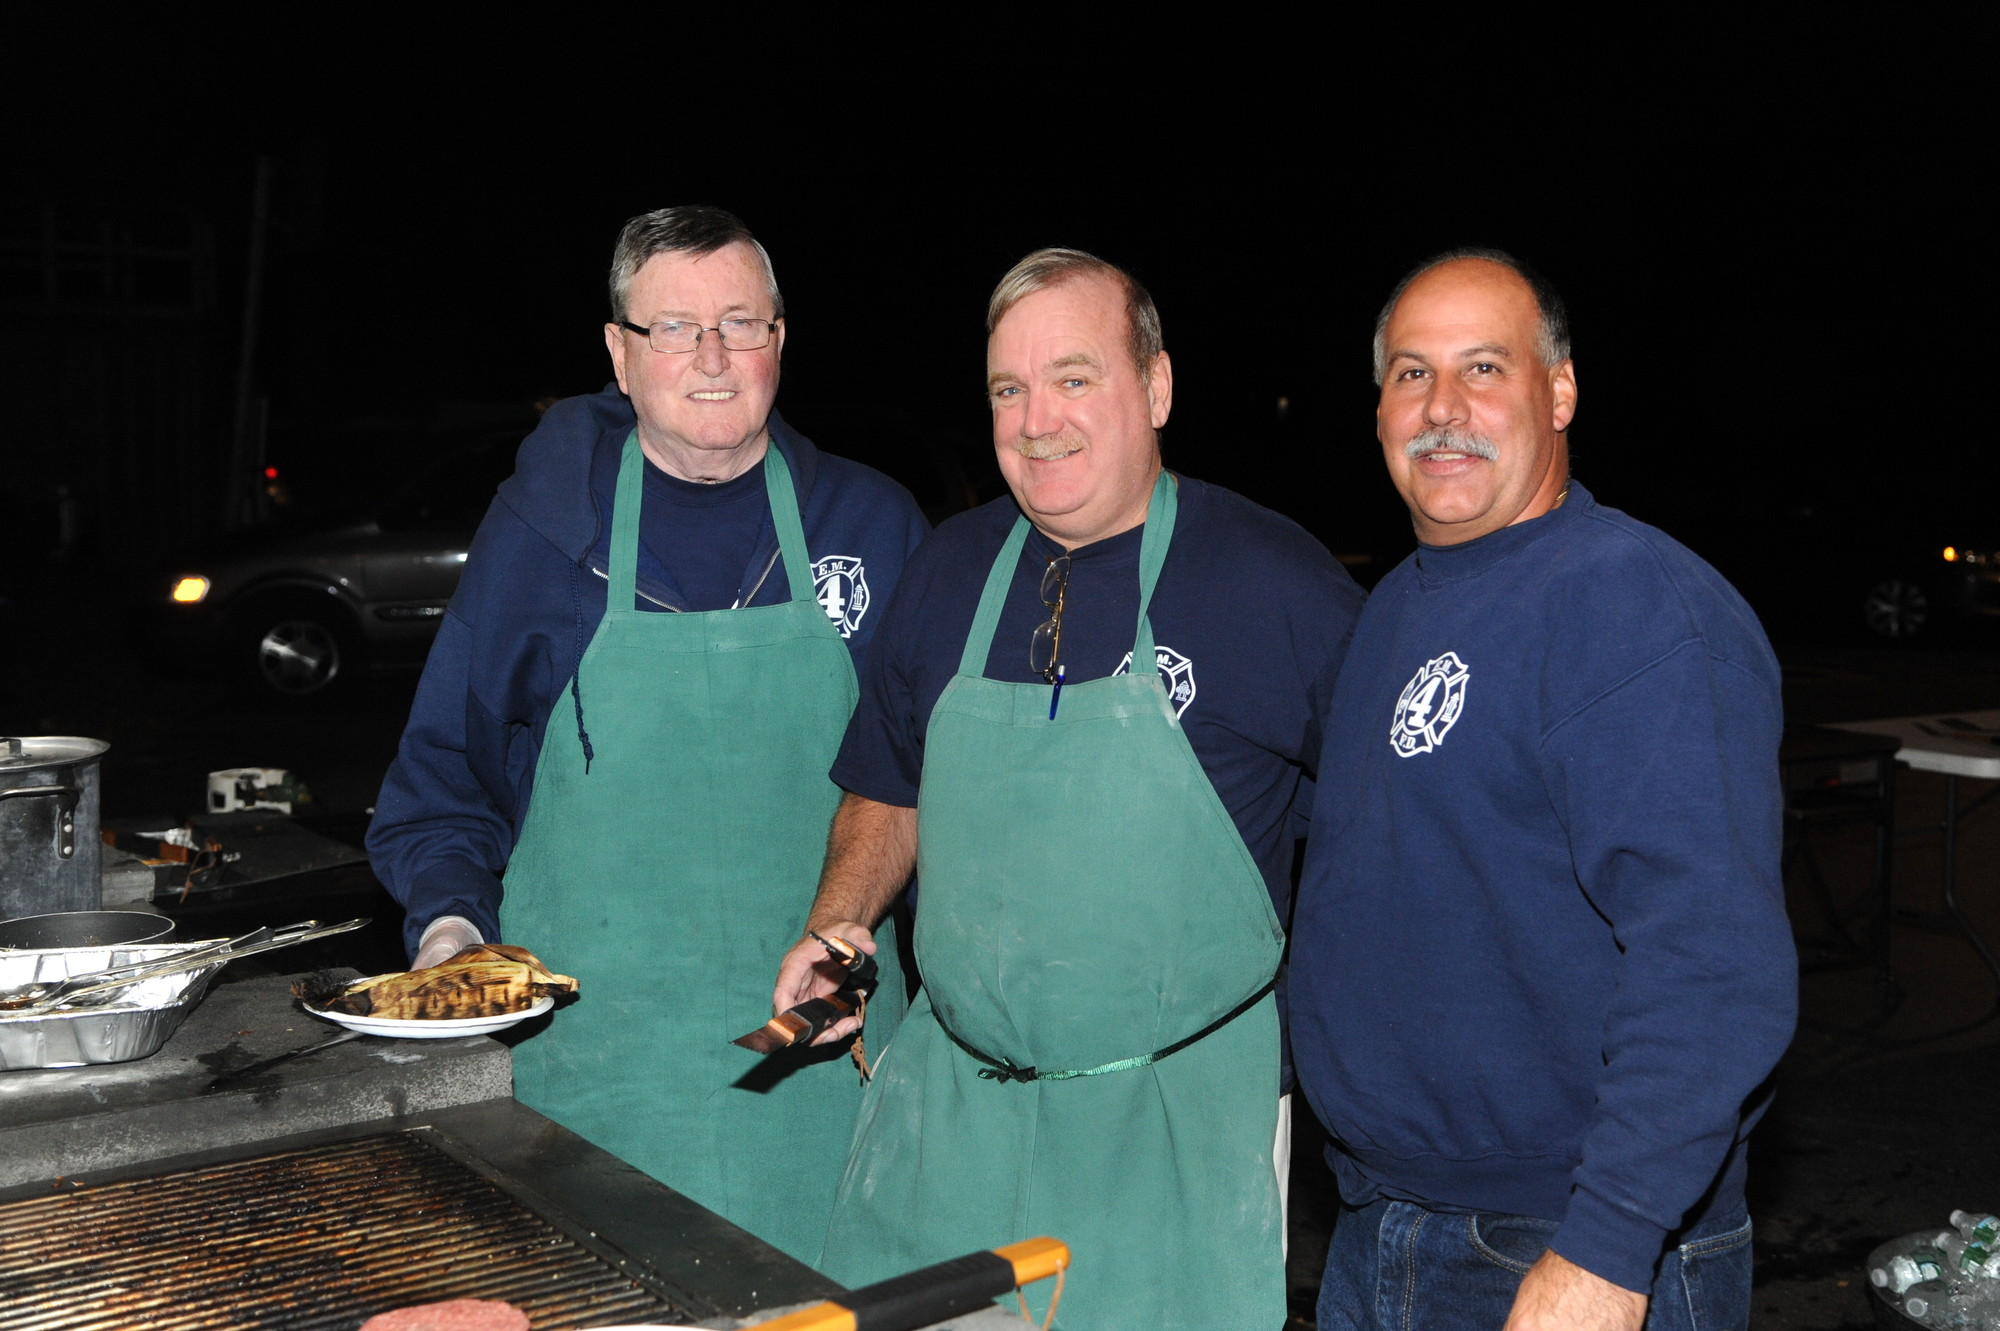 Station 4 volunteers Tom Callahan, at left, Dan Ward and Anthony Messina were chefs for the night.